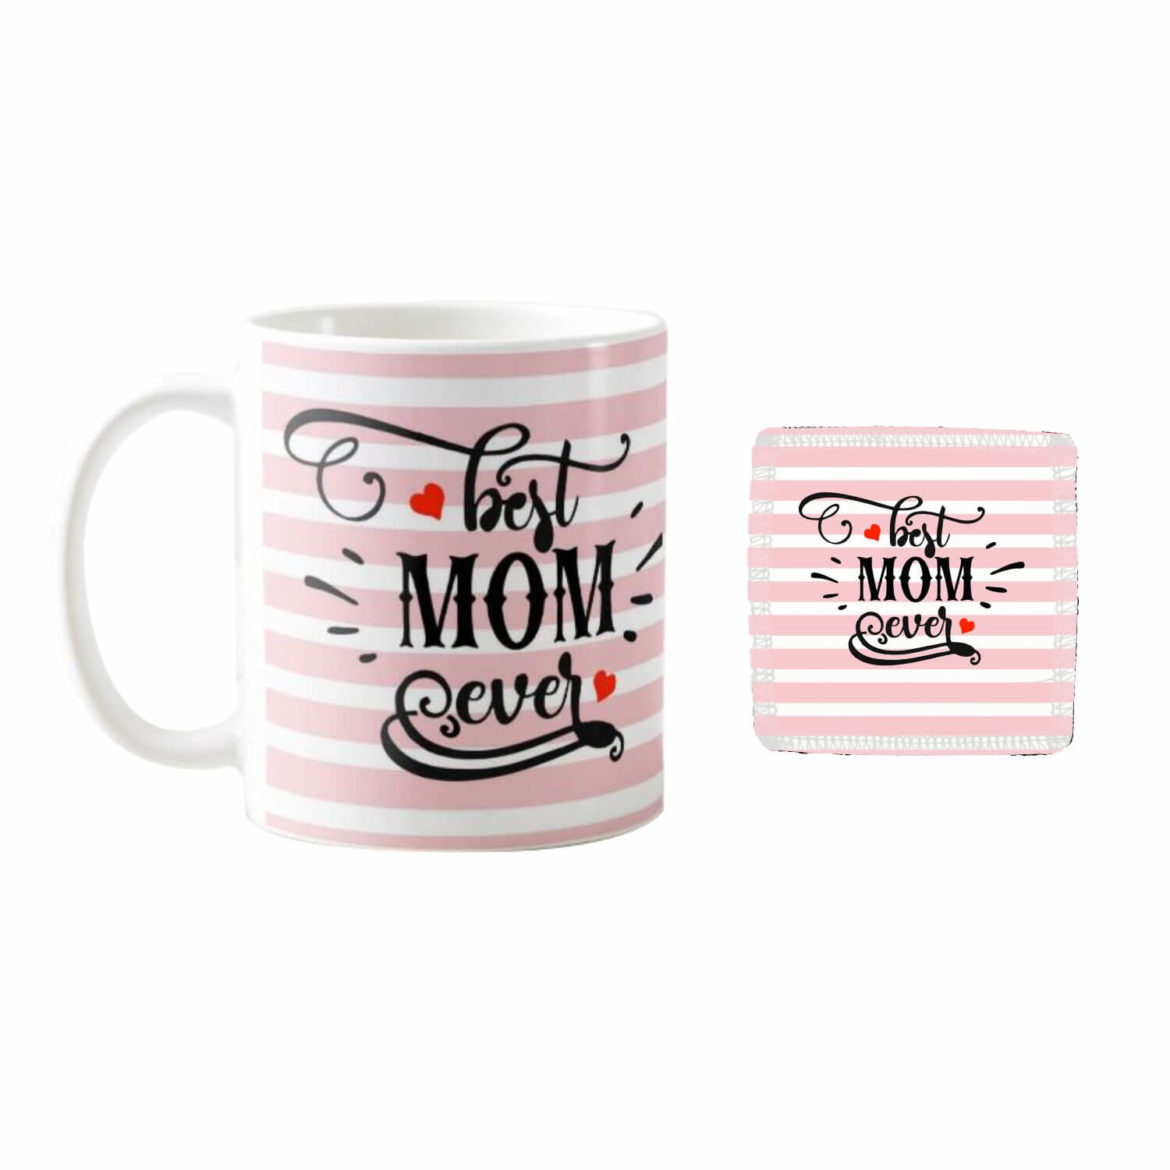 Best Mom Ever Coffee Mug Gifts For Mothers Day Giftsmate